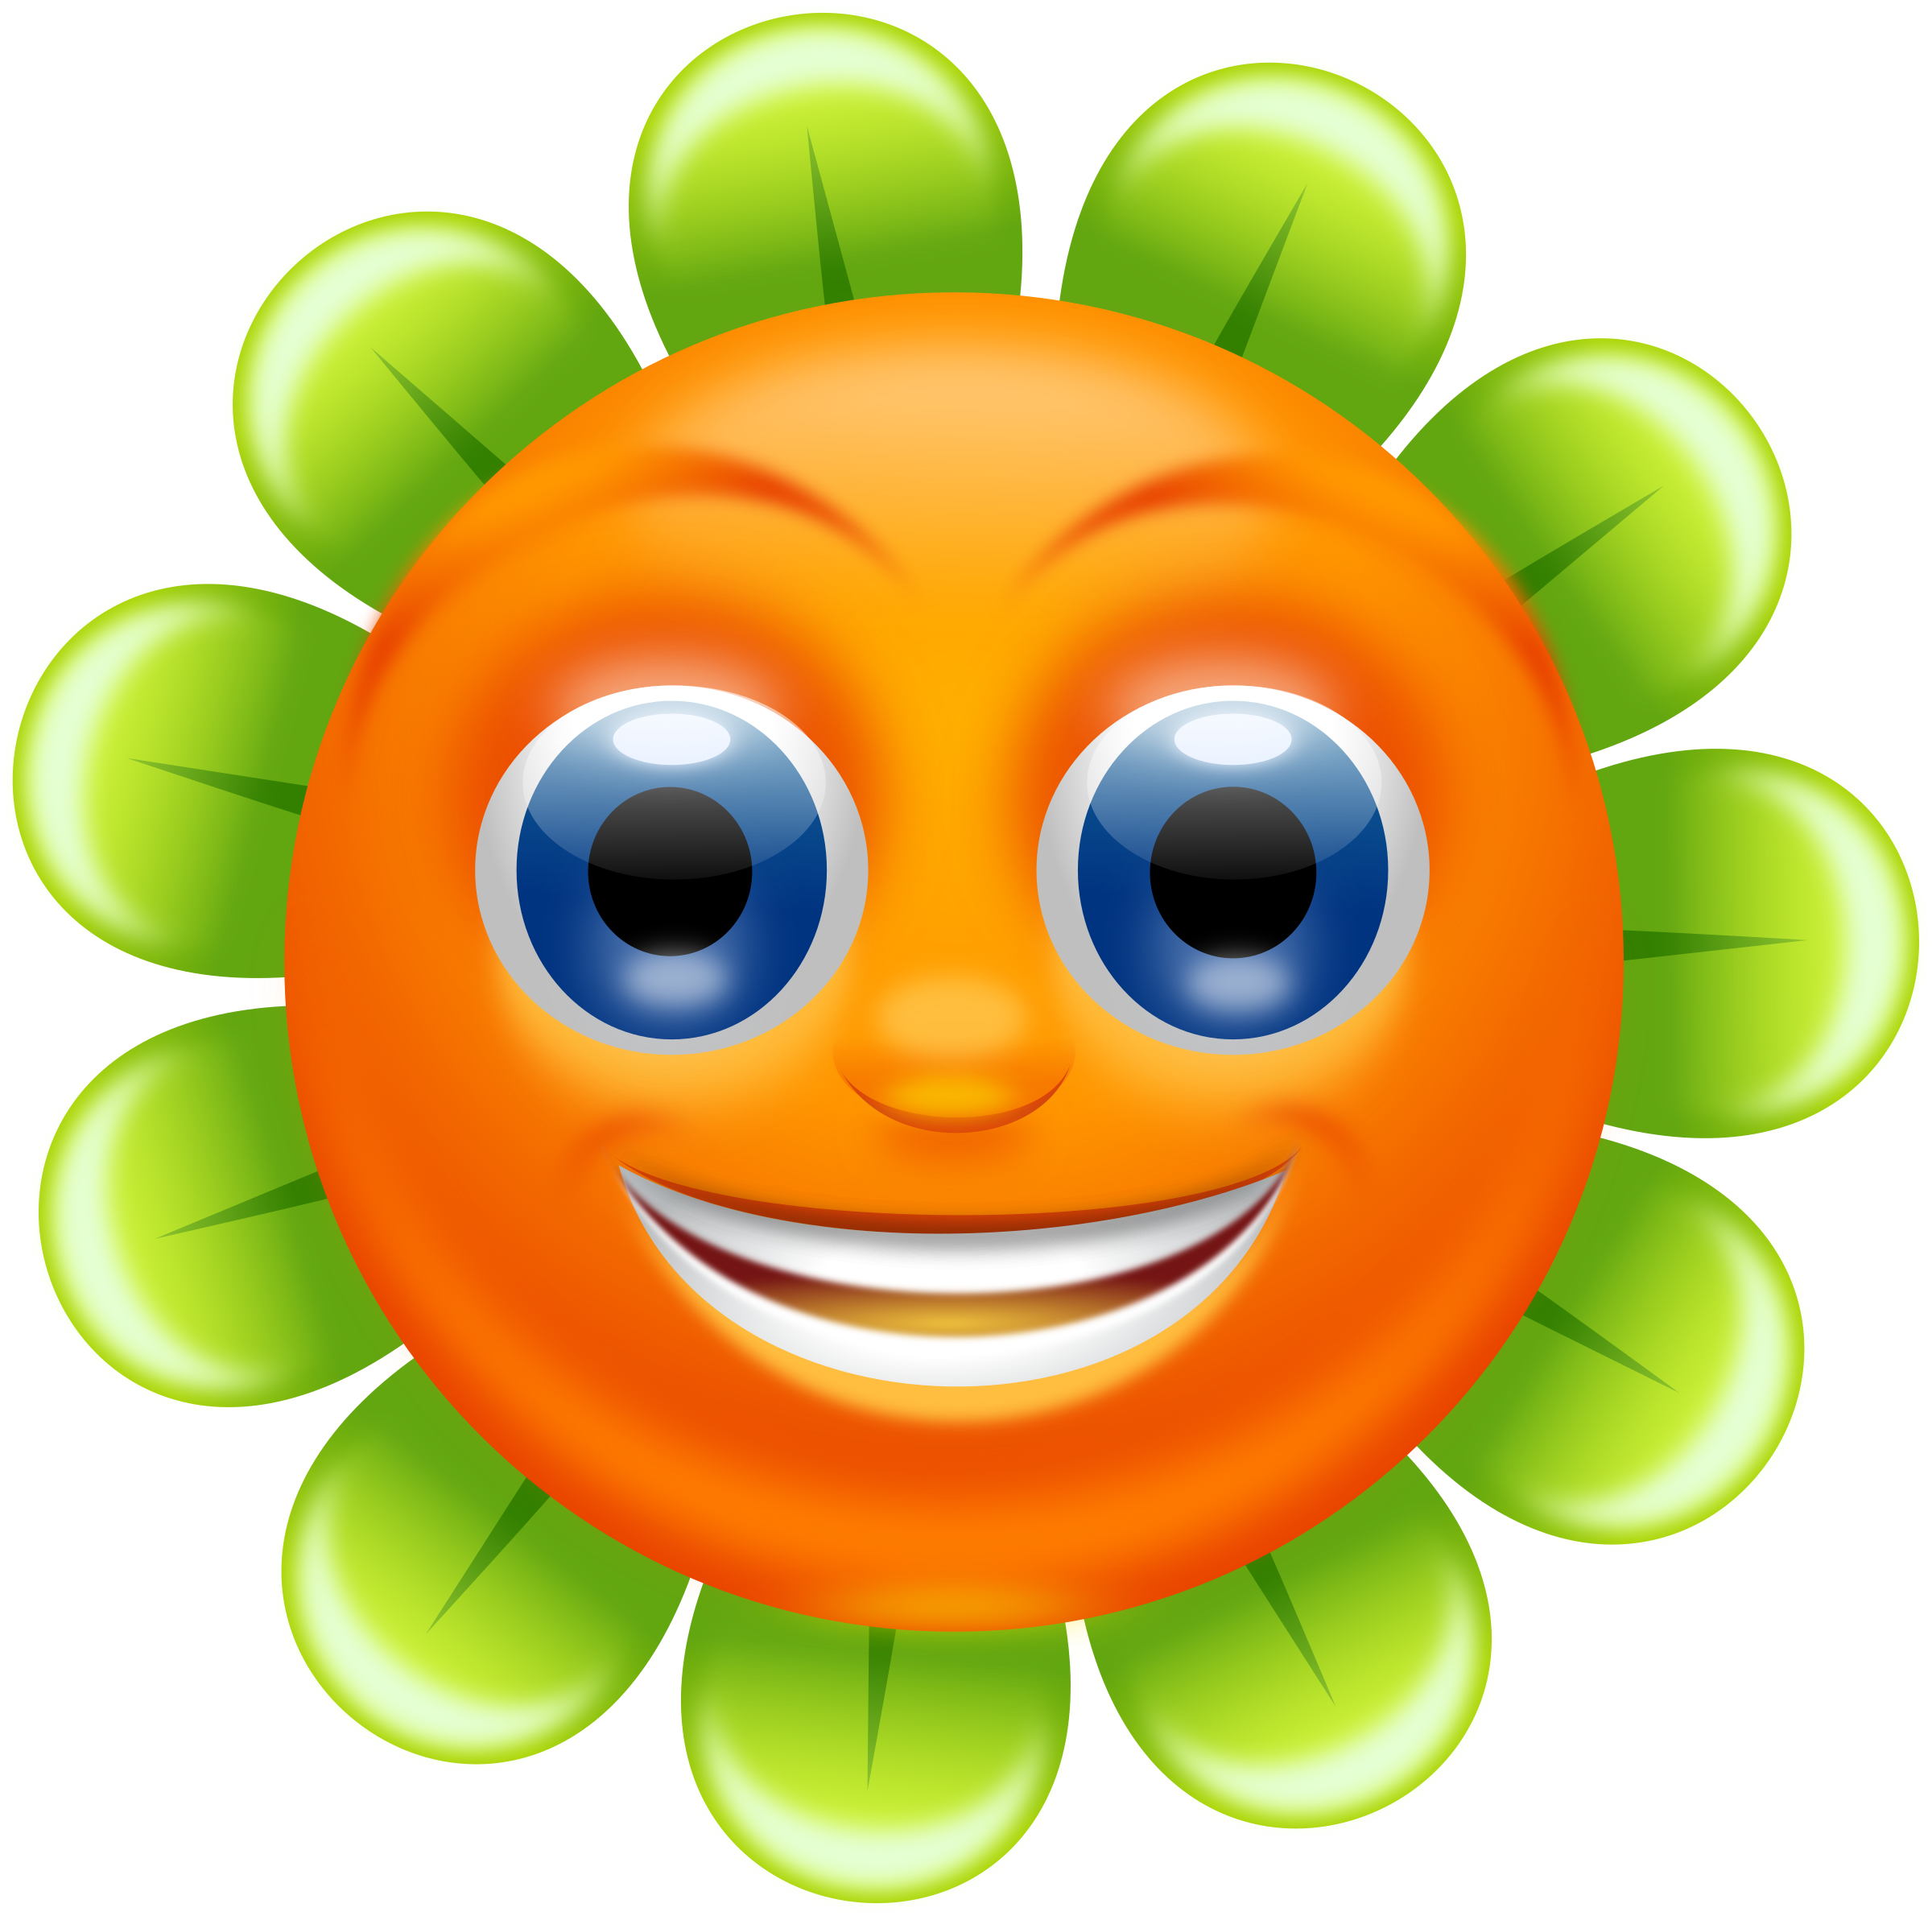 Smiling flower clipart banner stock Clipart - Smiling Flower - superb quality banner stock